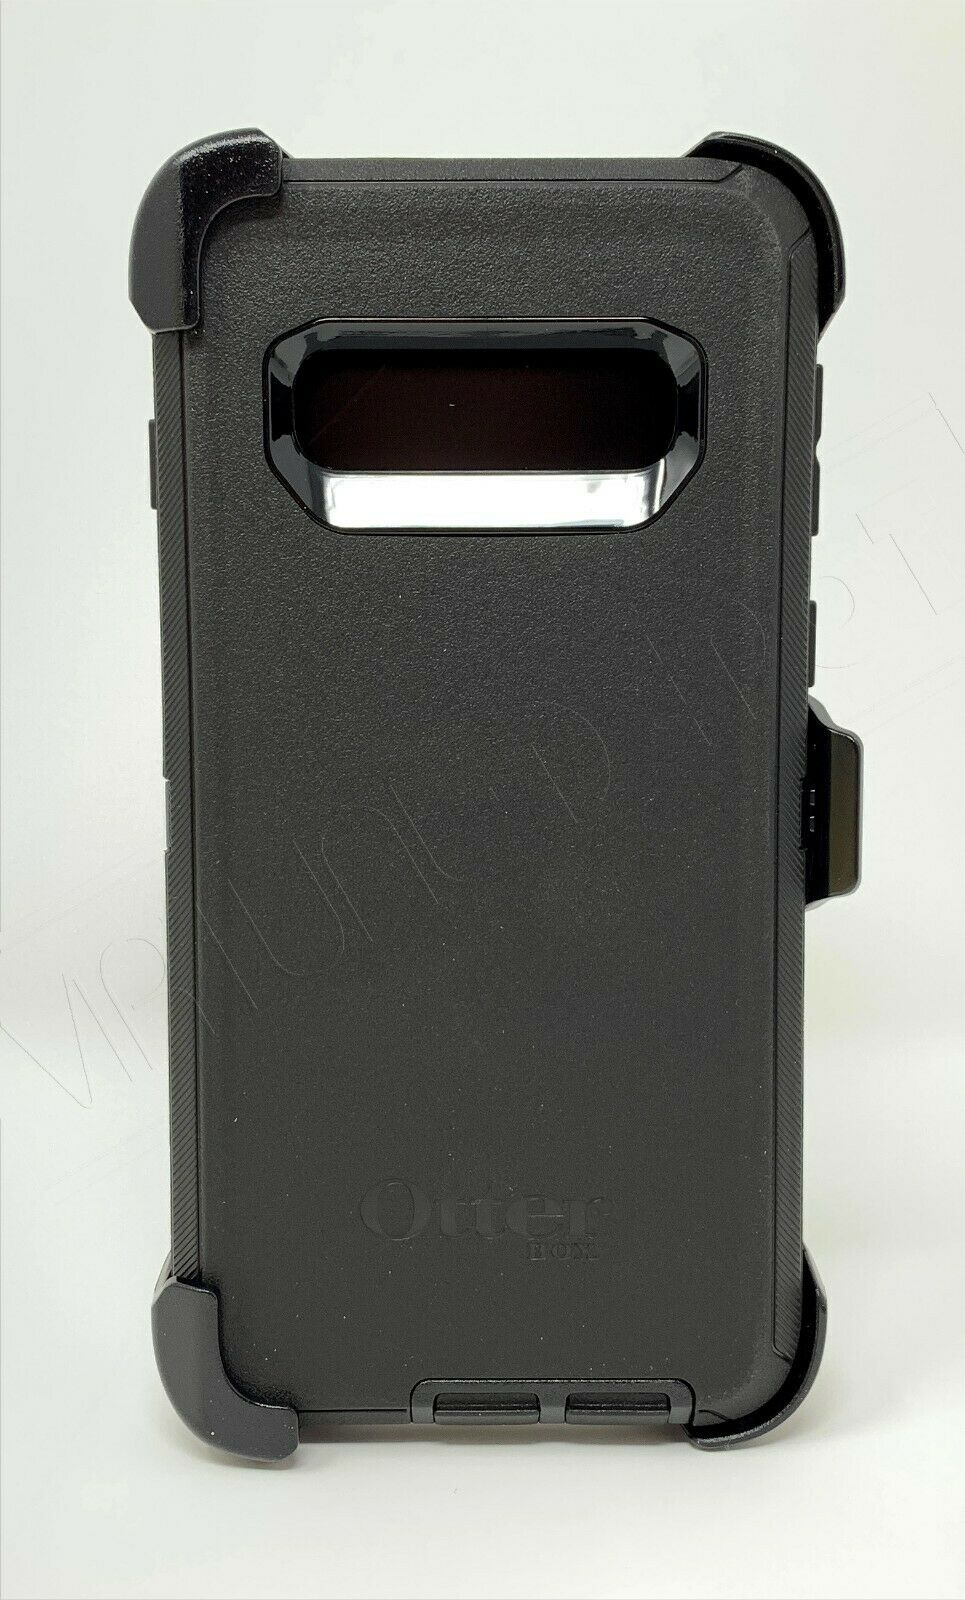 newest eaca7 ea1c6 Original OtterBox Defender Case w/Holster Belt Clip for Galaxy S10e, S10,  S10+